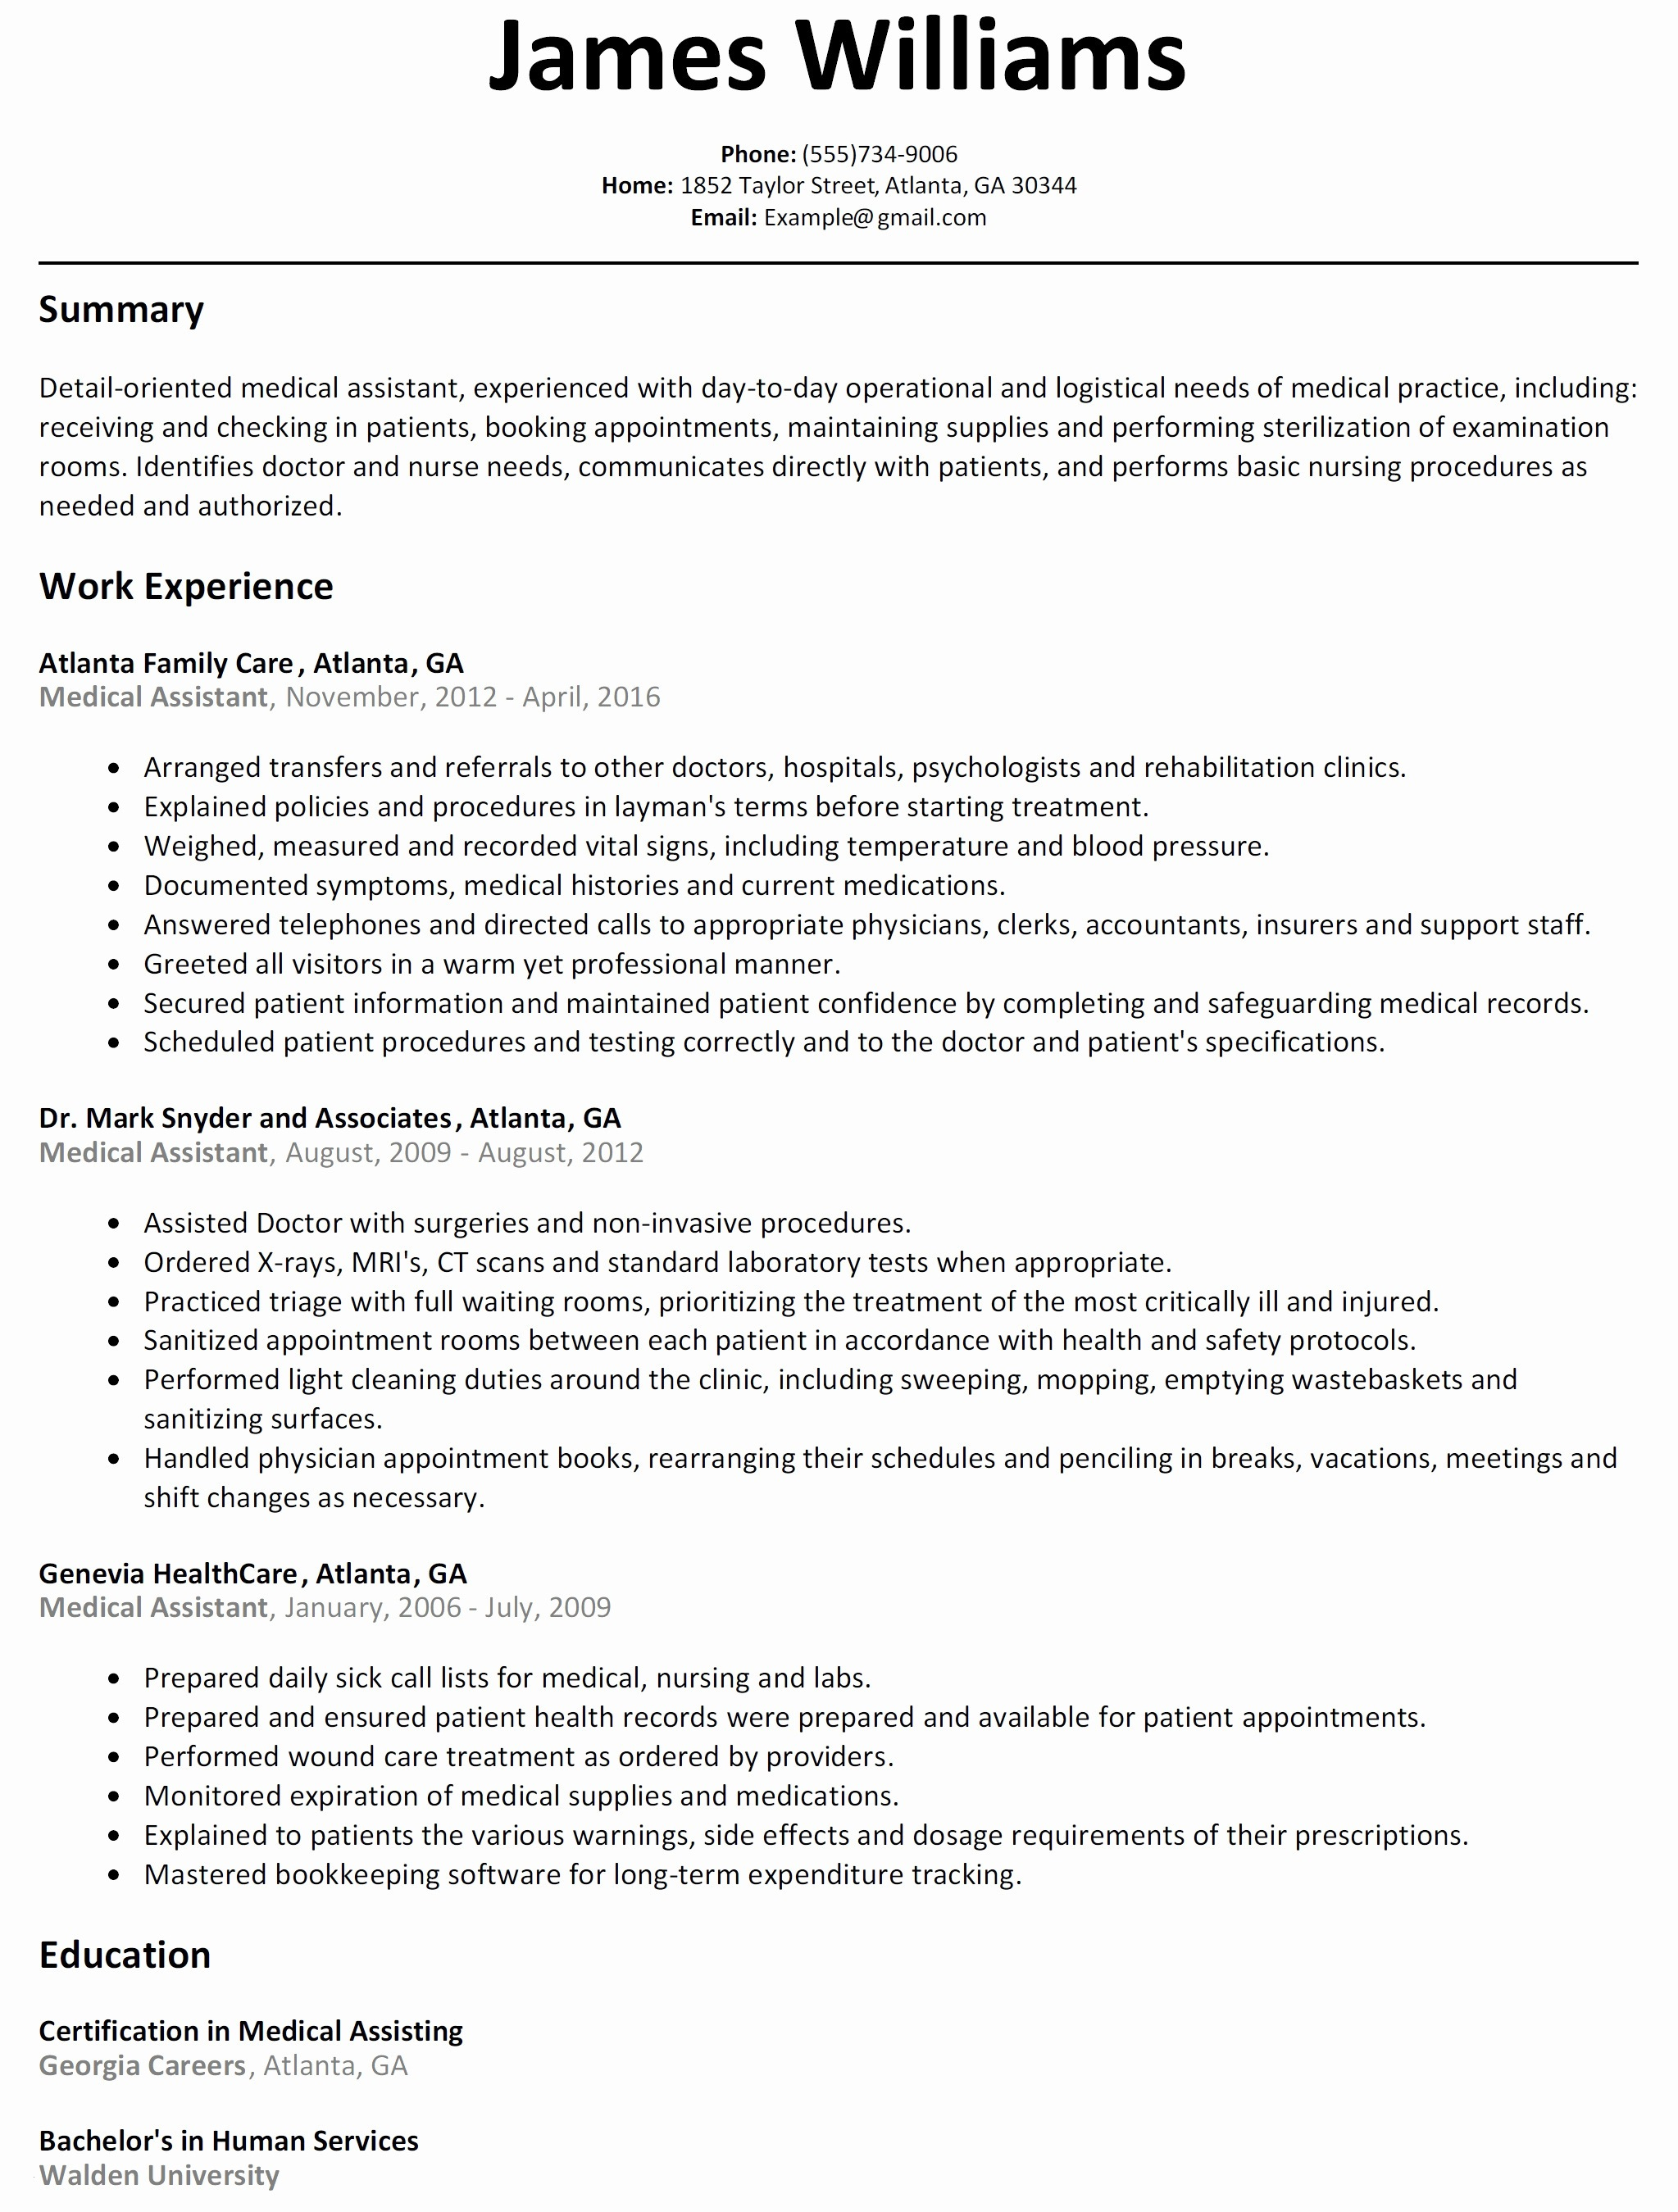 Paraprofessional Resume Template - Simple Basic Resume format Paragraphrewriter